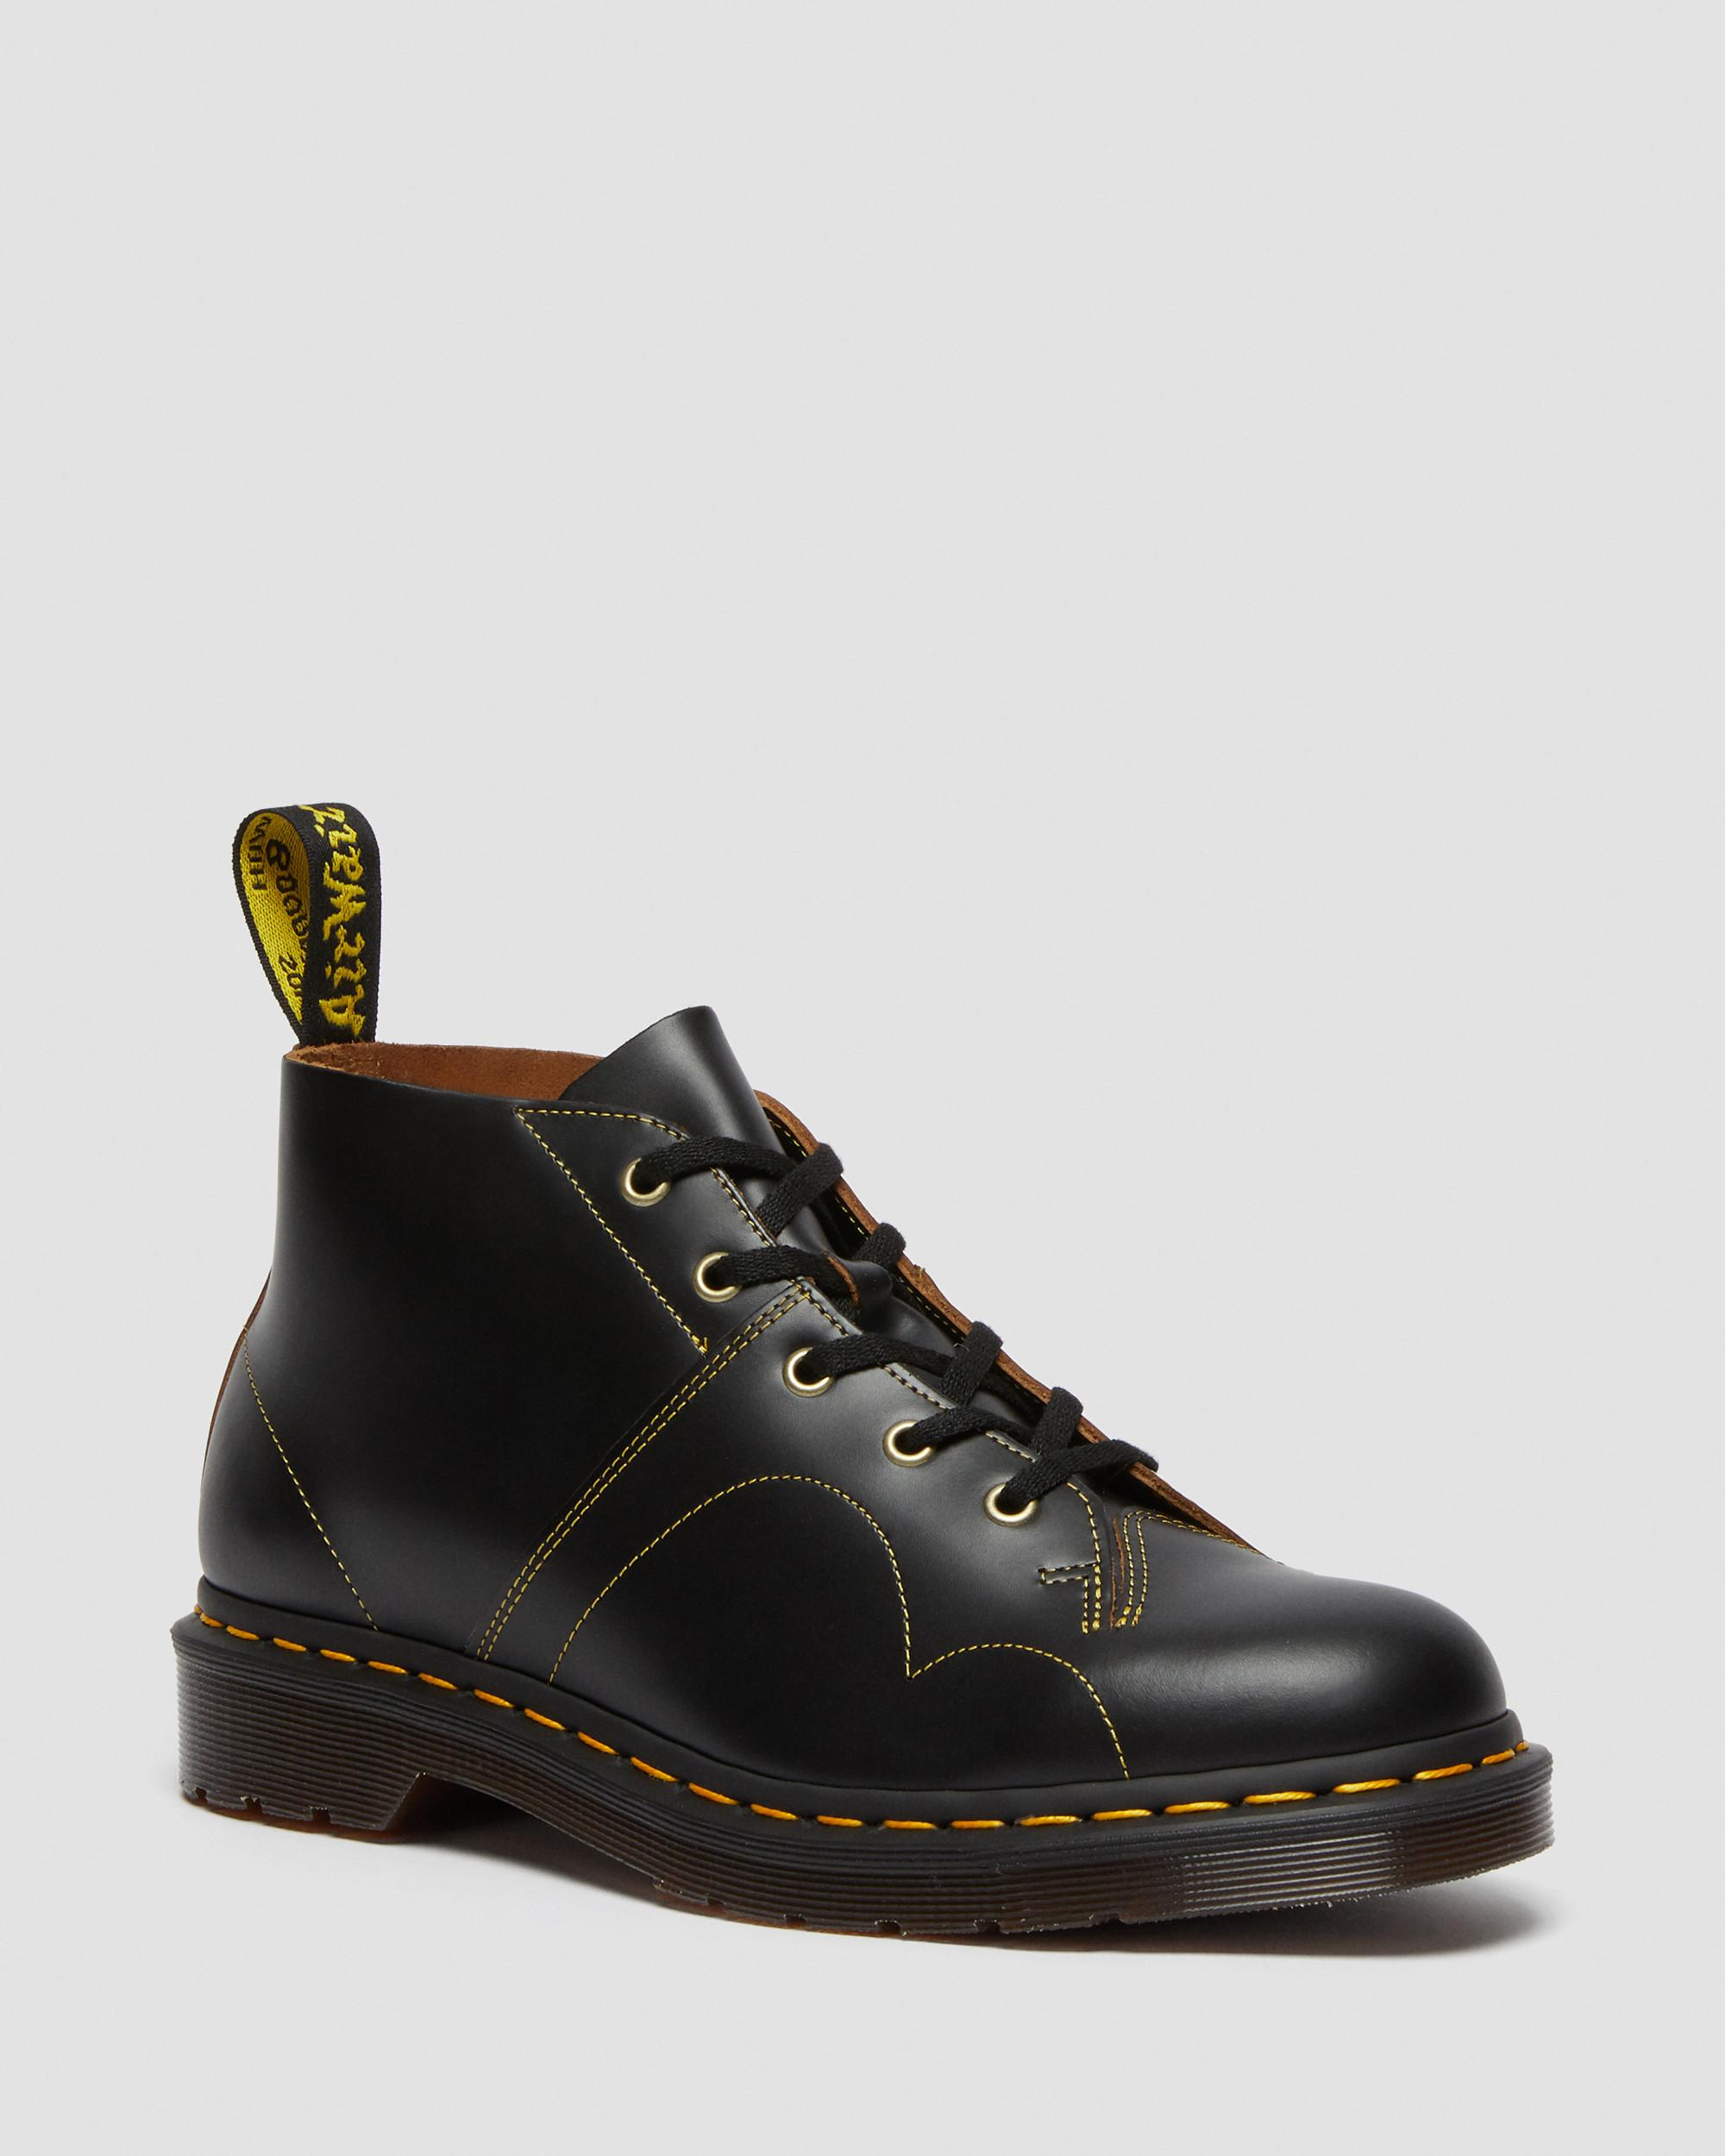 Dr. Martens Church Stud Boots